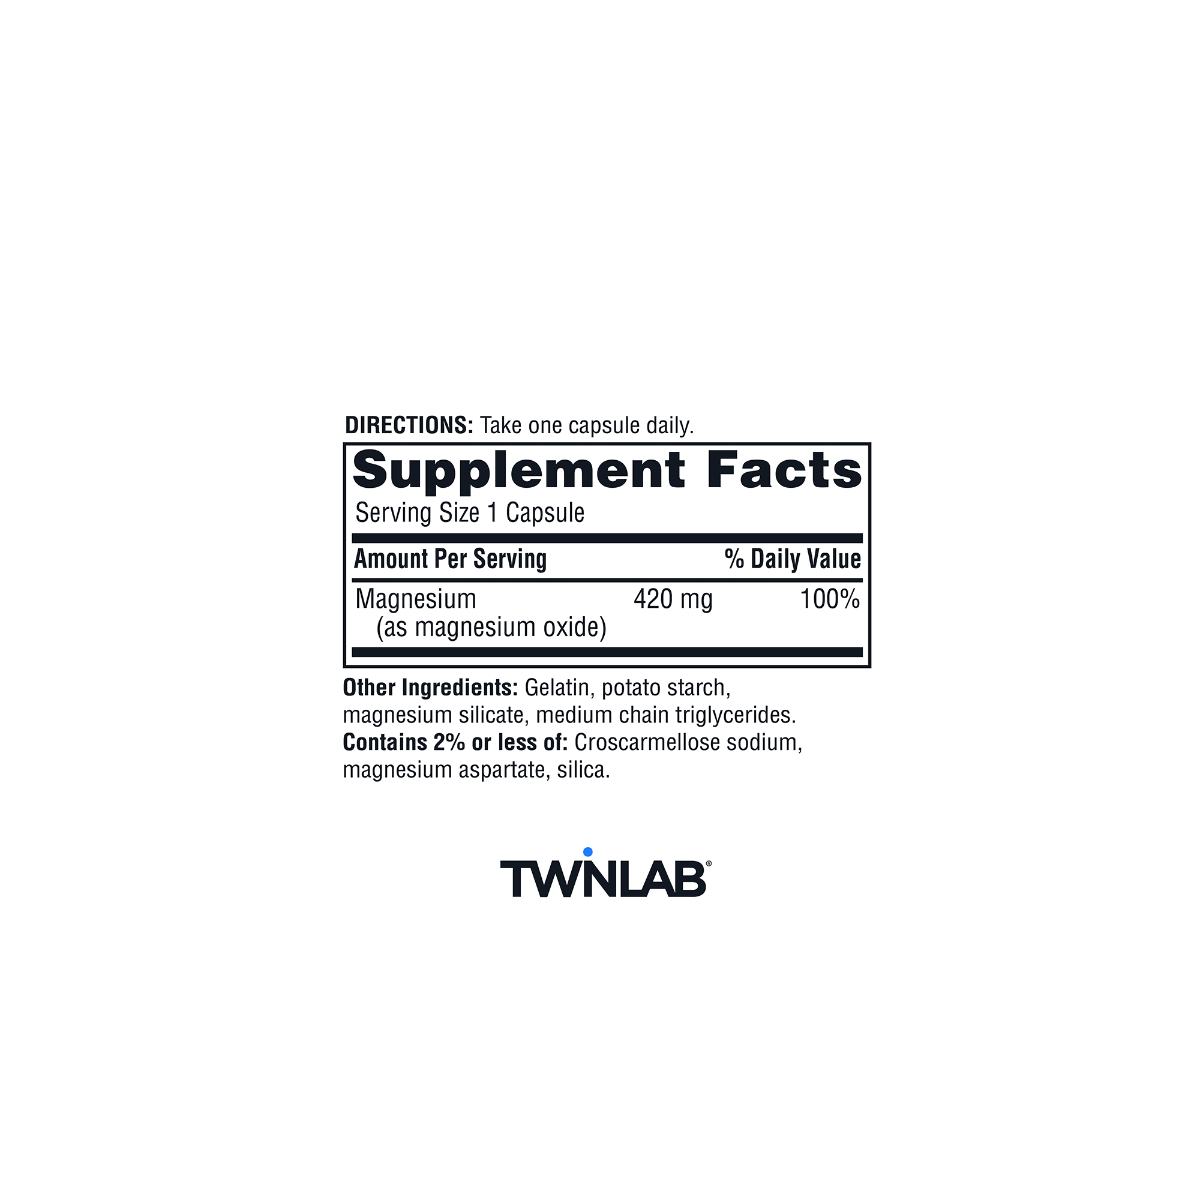 Supplement facts for Twinlab® Magnesium Caps.